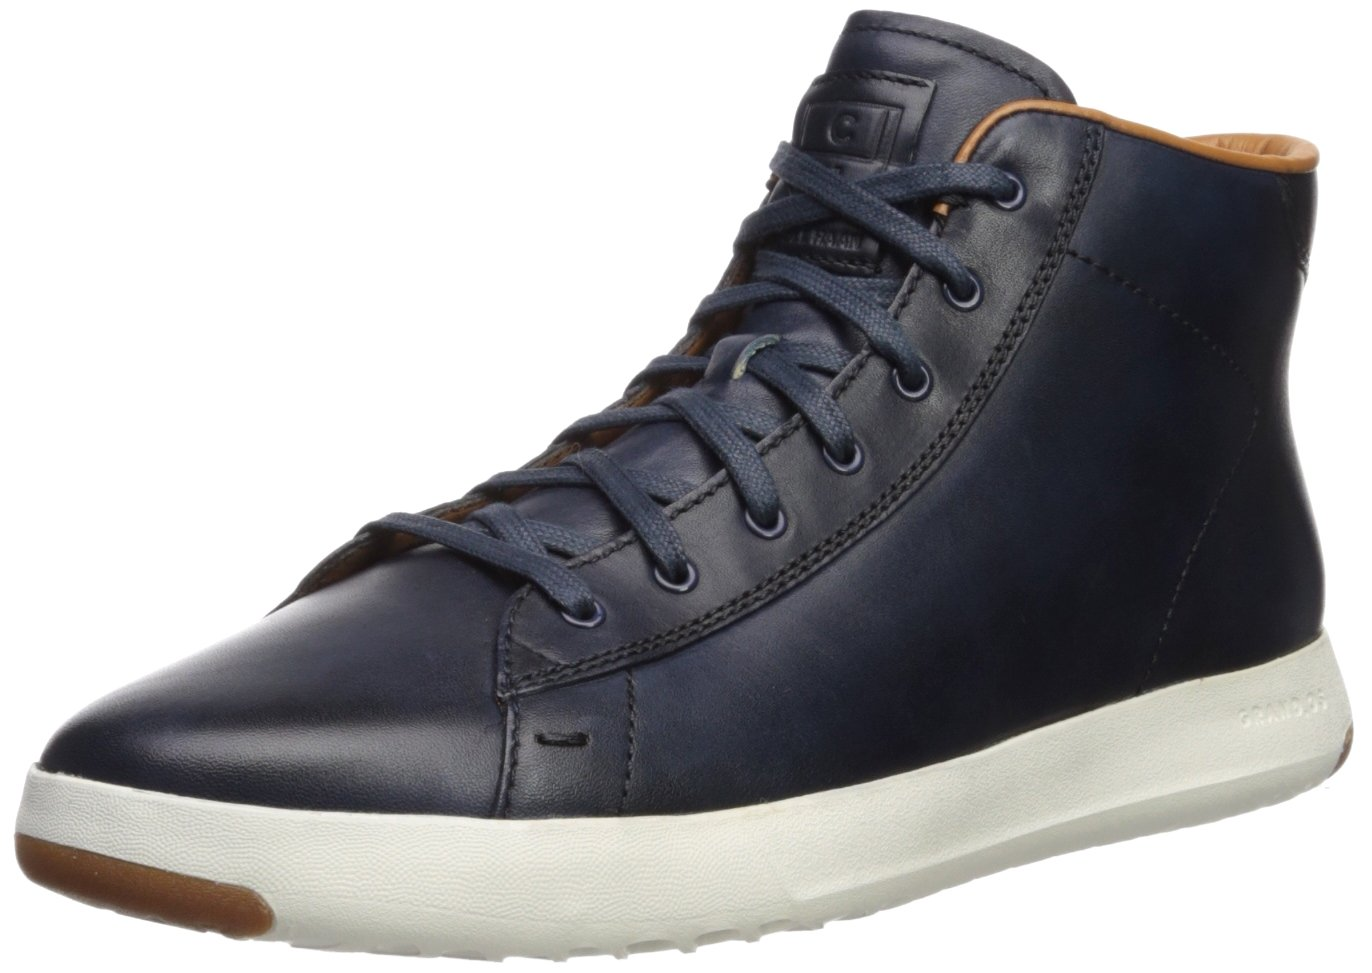 Cole Haan Men's Grandpro Hi Lux Sneaker, Blazer Blue Handstain, 10.5 Medium US